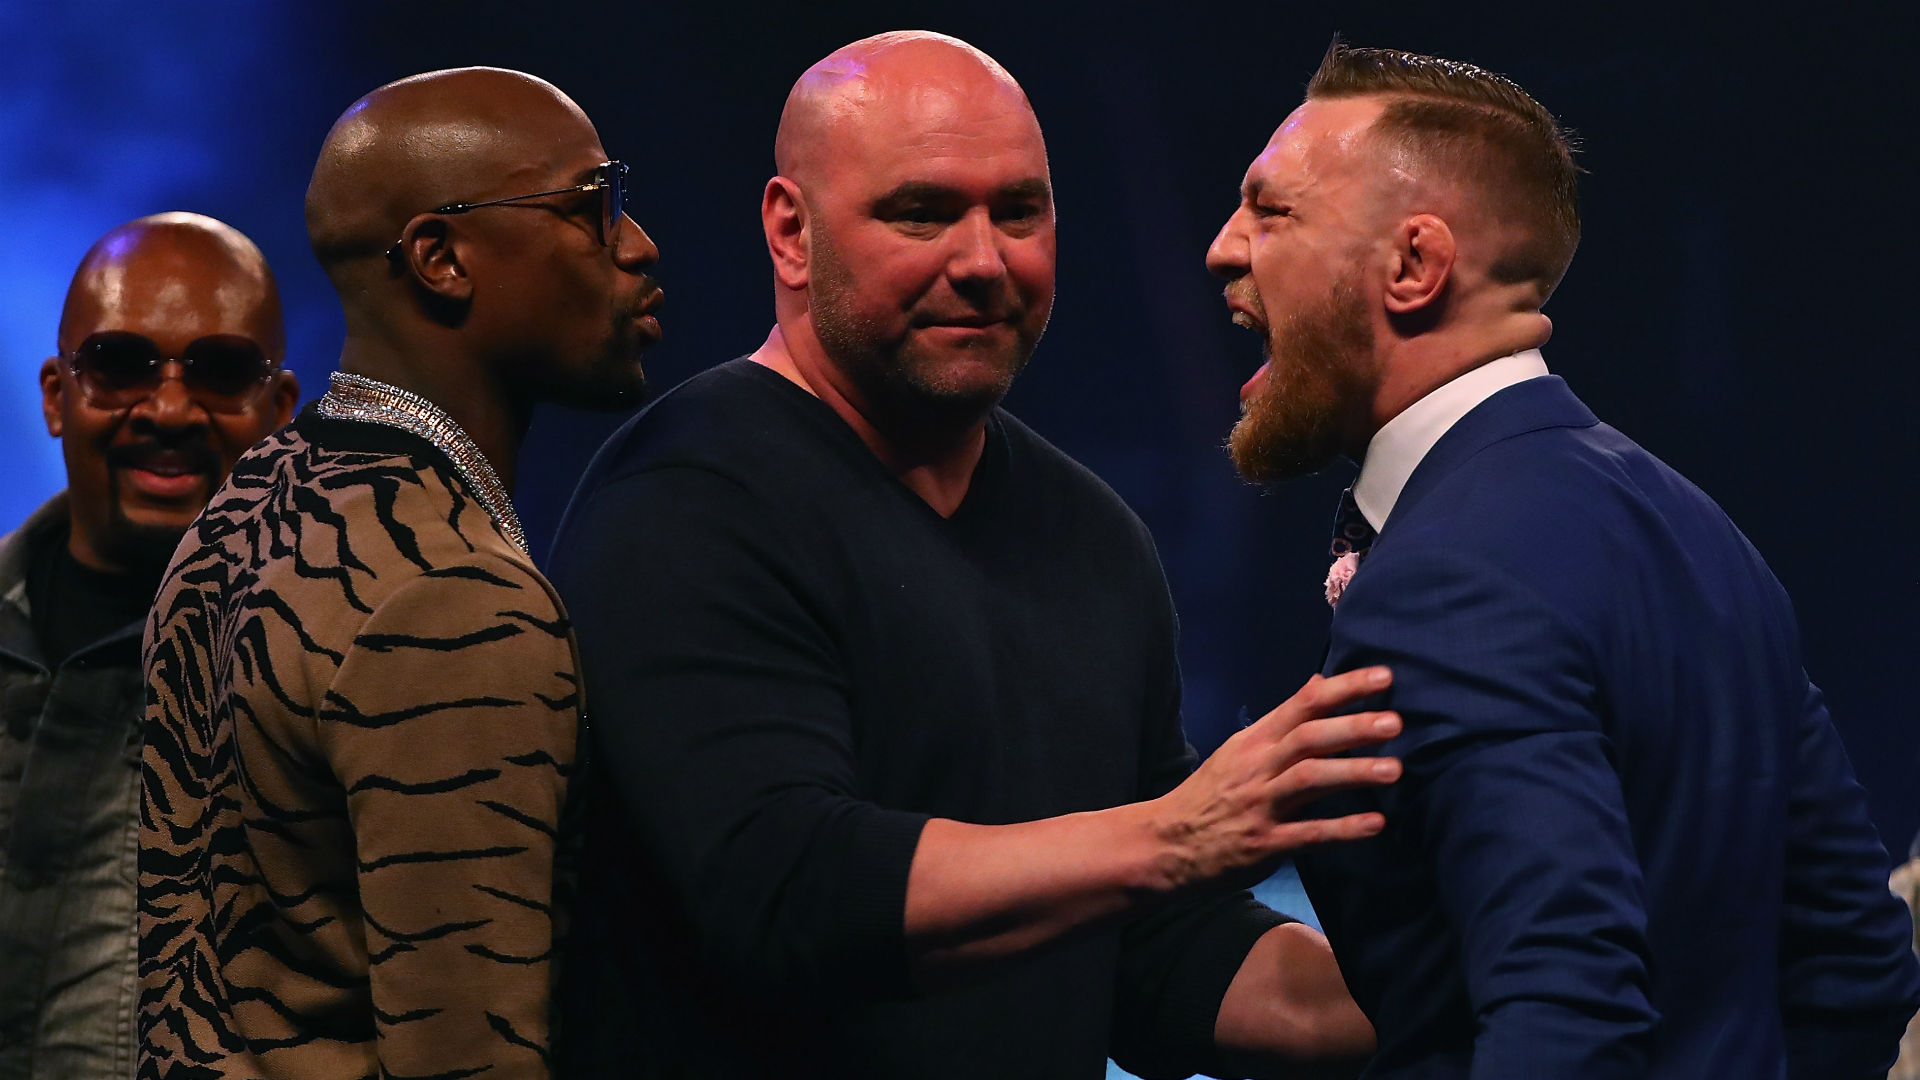 Association of Ringside Physicians 'strongly cautions' against smaller gloves for Mayweather-McGregor